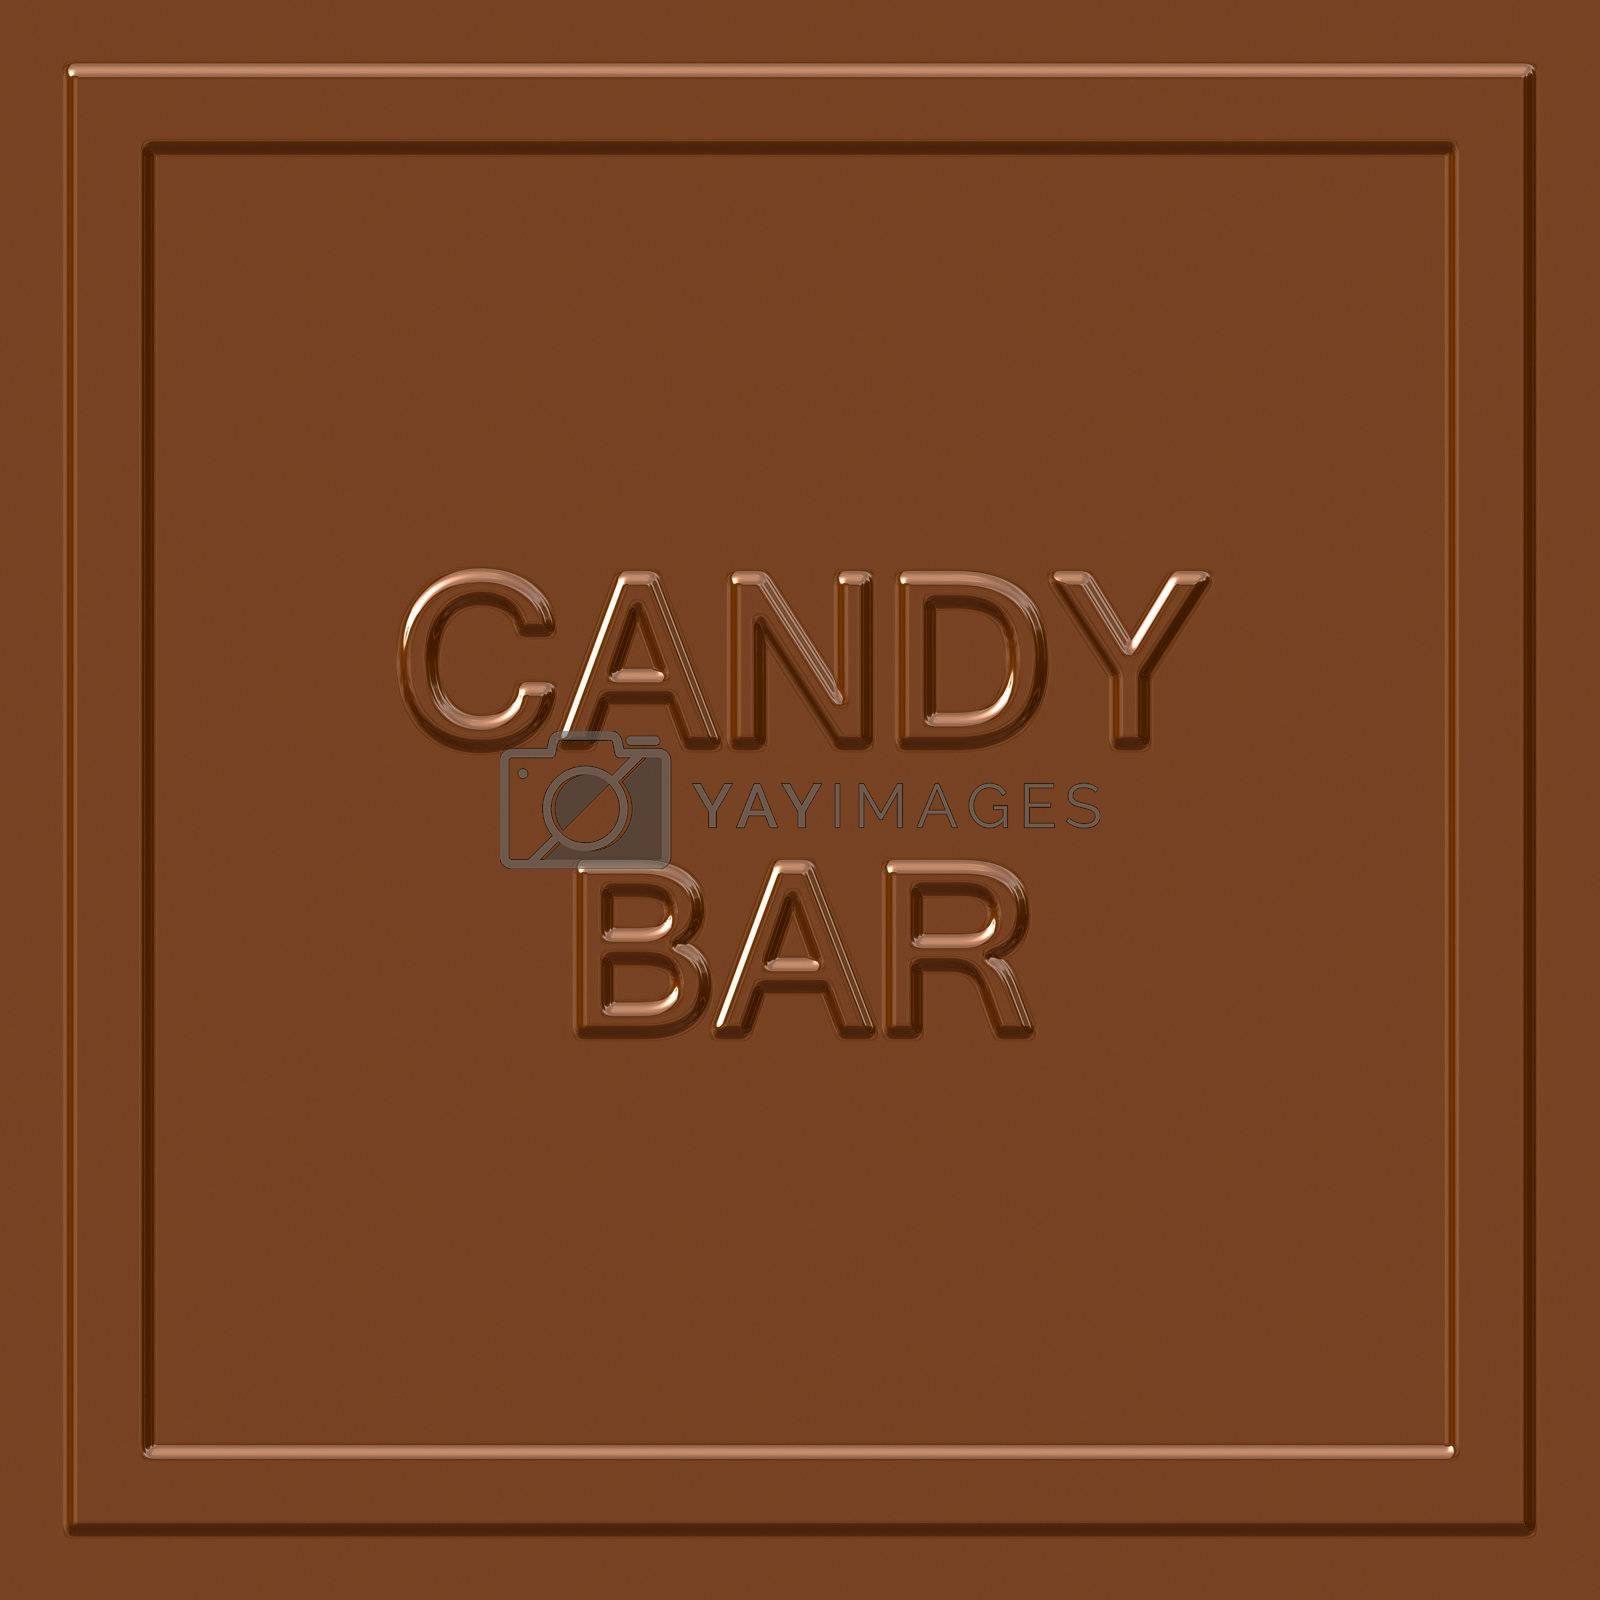 A milk chocolate candy bar square that tiles seamlessly as a pattern to make any background or isolated chocolate bar shape that you need.